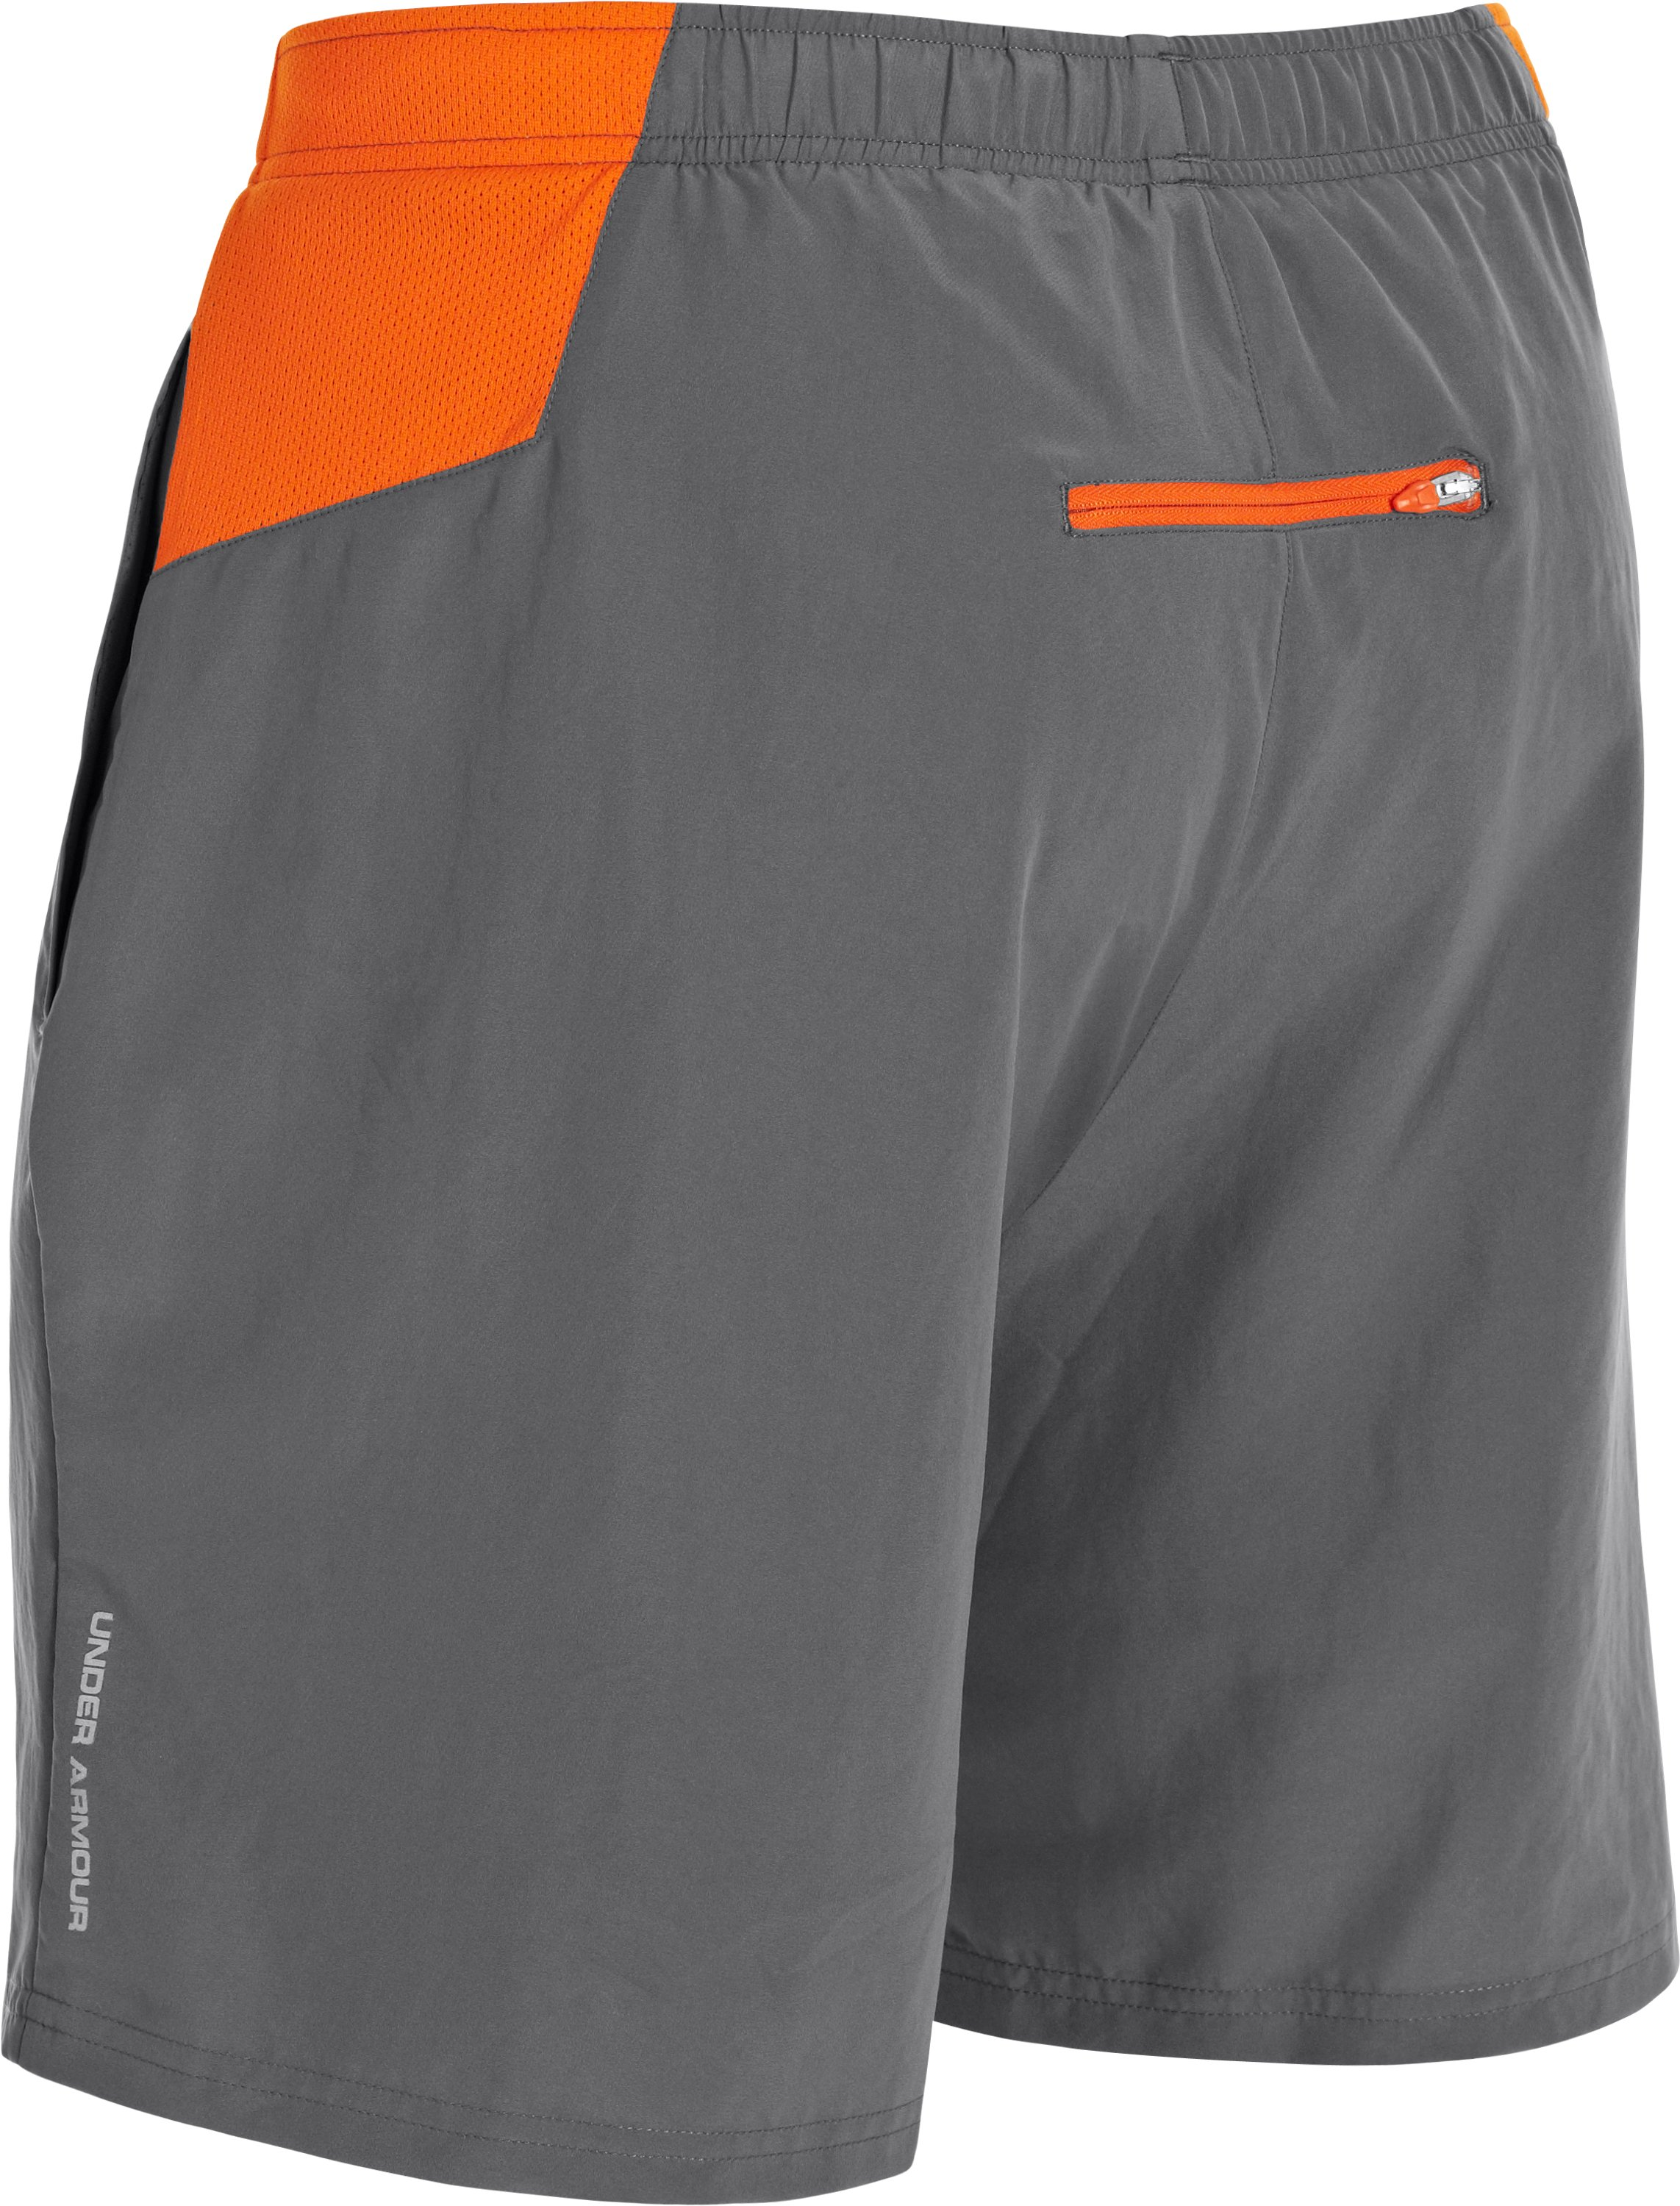 Men's UA Sixth Man 2-in-1 Shorts, Graphite